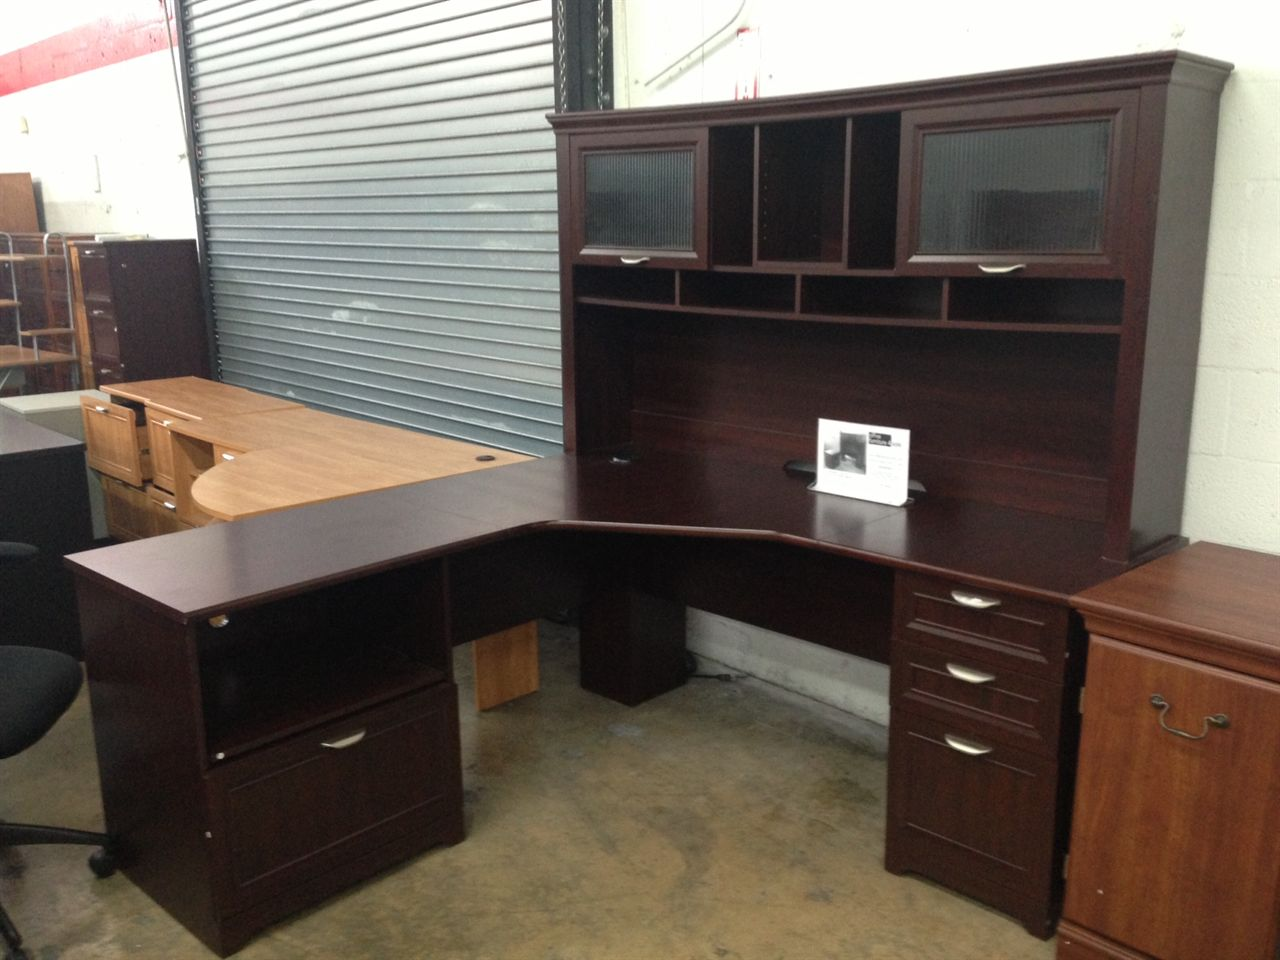 office furniture ideas dark brown l shaped desk with hutch and storage with silver handle plus computer or laptop